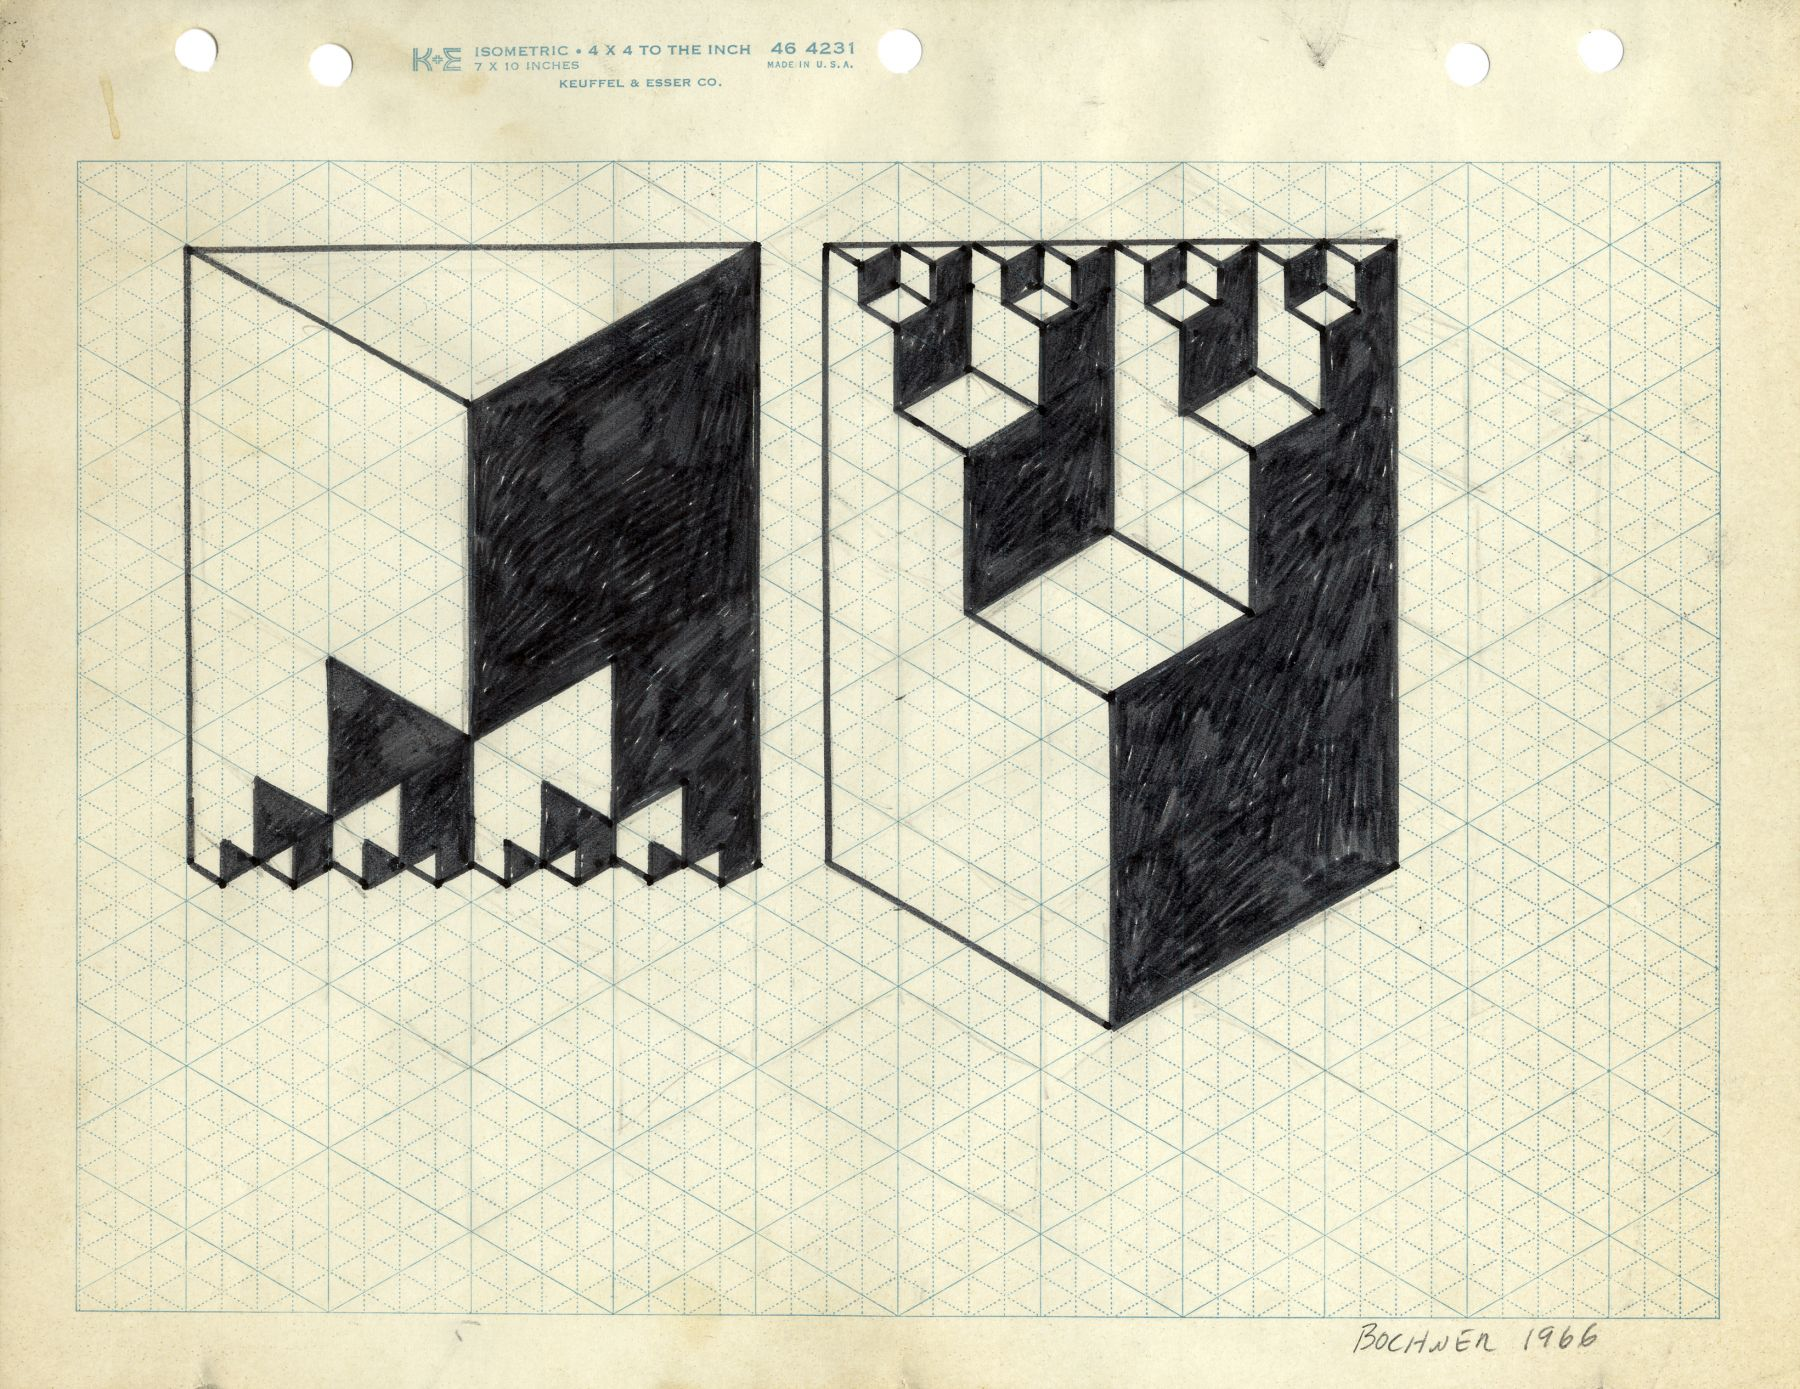 Mel Bochner,Study for Double Solid Based on Cantor's Paradox,1966. Ink and pencil on graph paper, 8 1/2 x 11 inches.